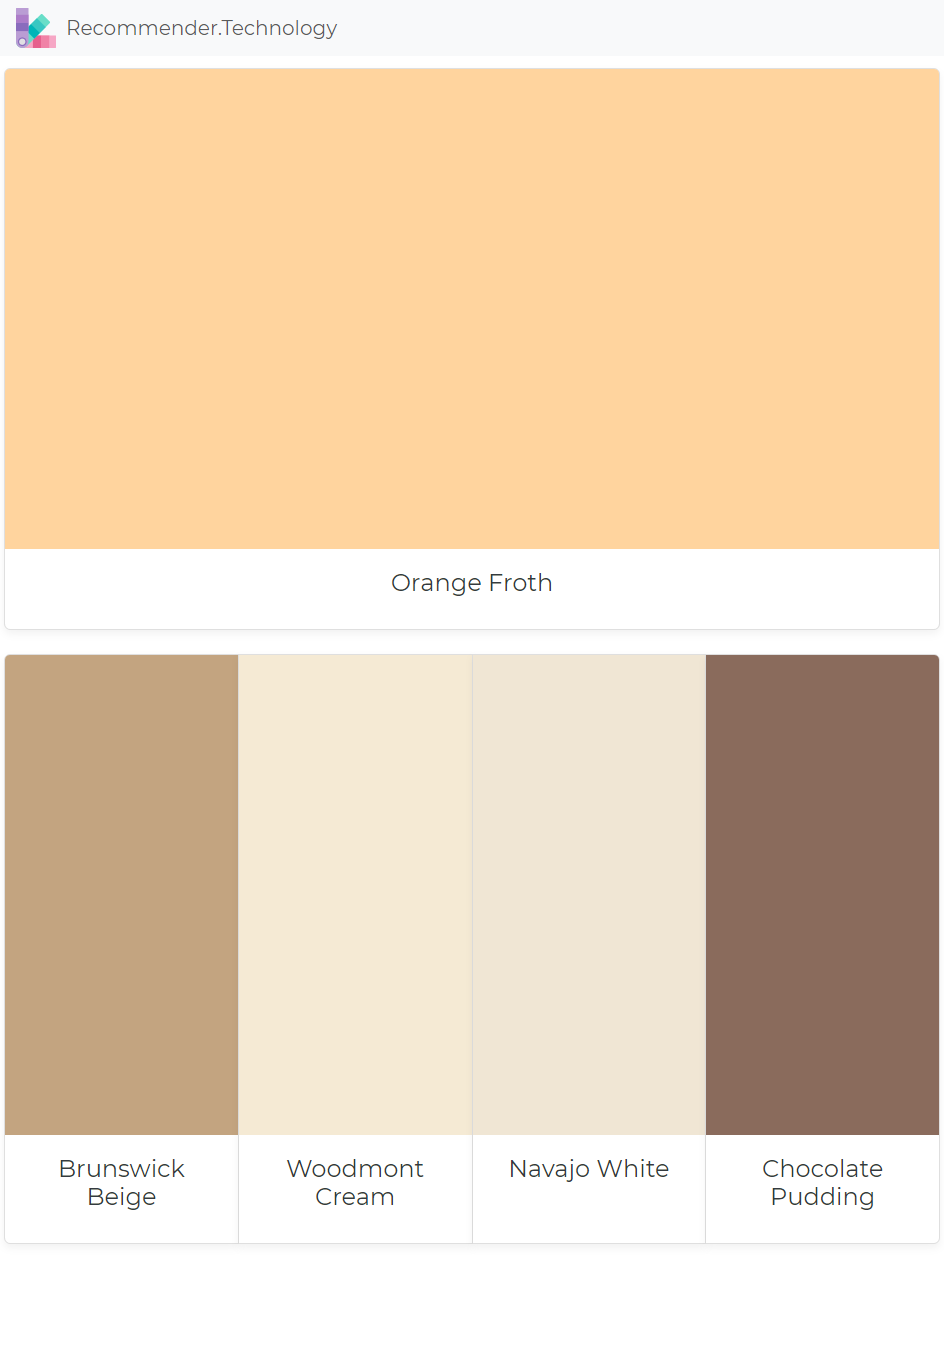 Orange Froth Brunswick Beige Woodmont Cream Navajo White Chocolate Pudding Paint Color